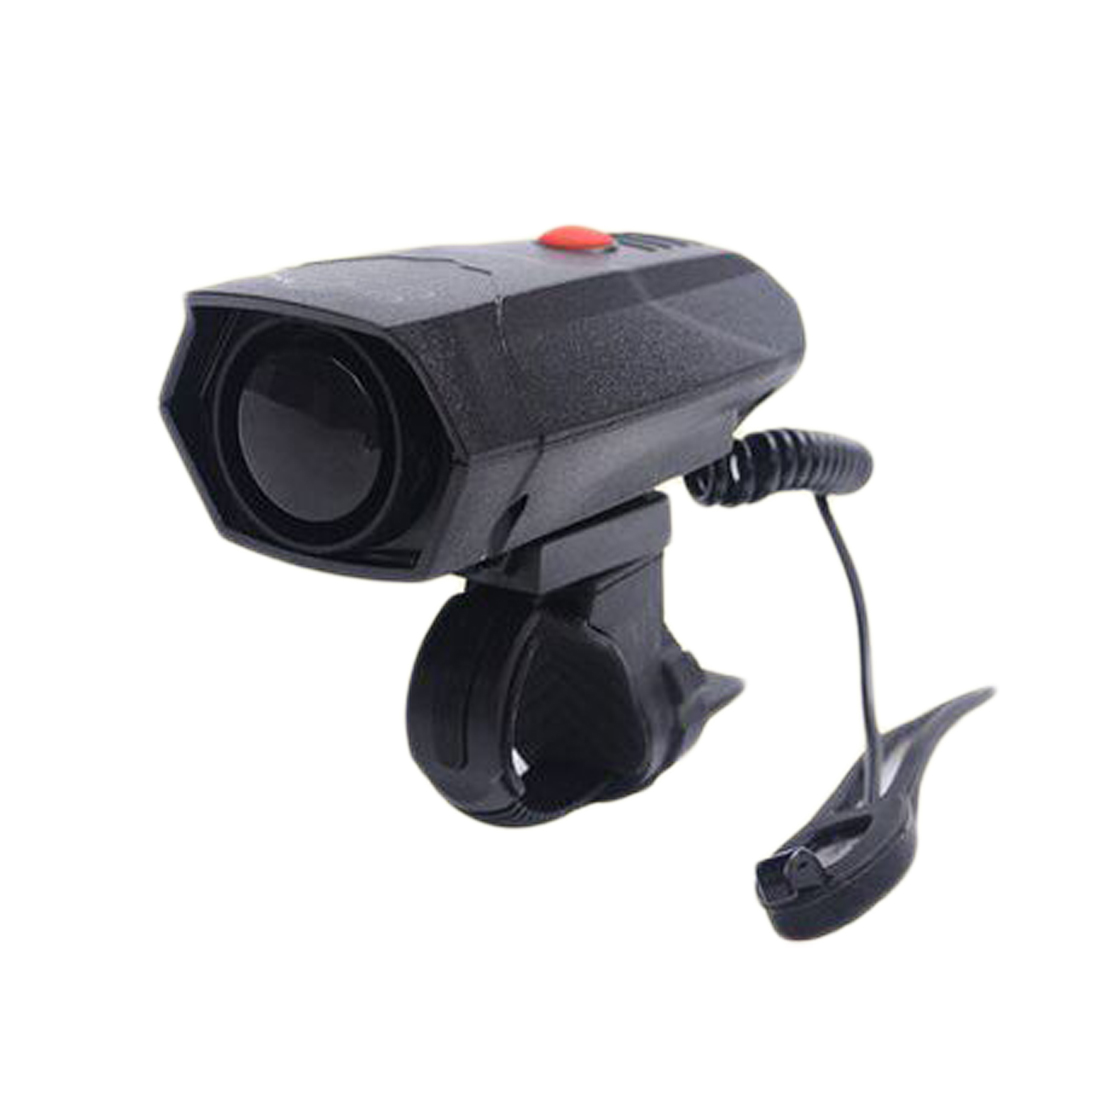 Cycling Bicycle Bell Cycling Horns Electric Bike Bicycle Handlebar Ring Bell Horn Strong Loud Alarm Bell Sound Bike Horn